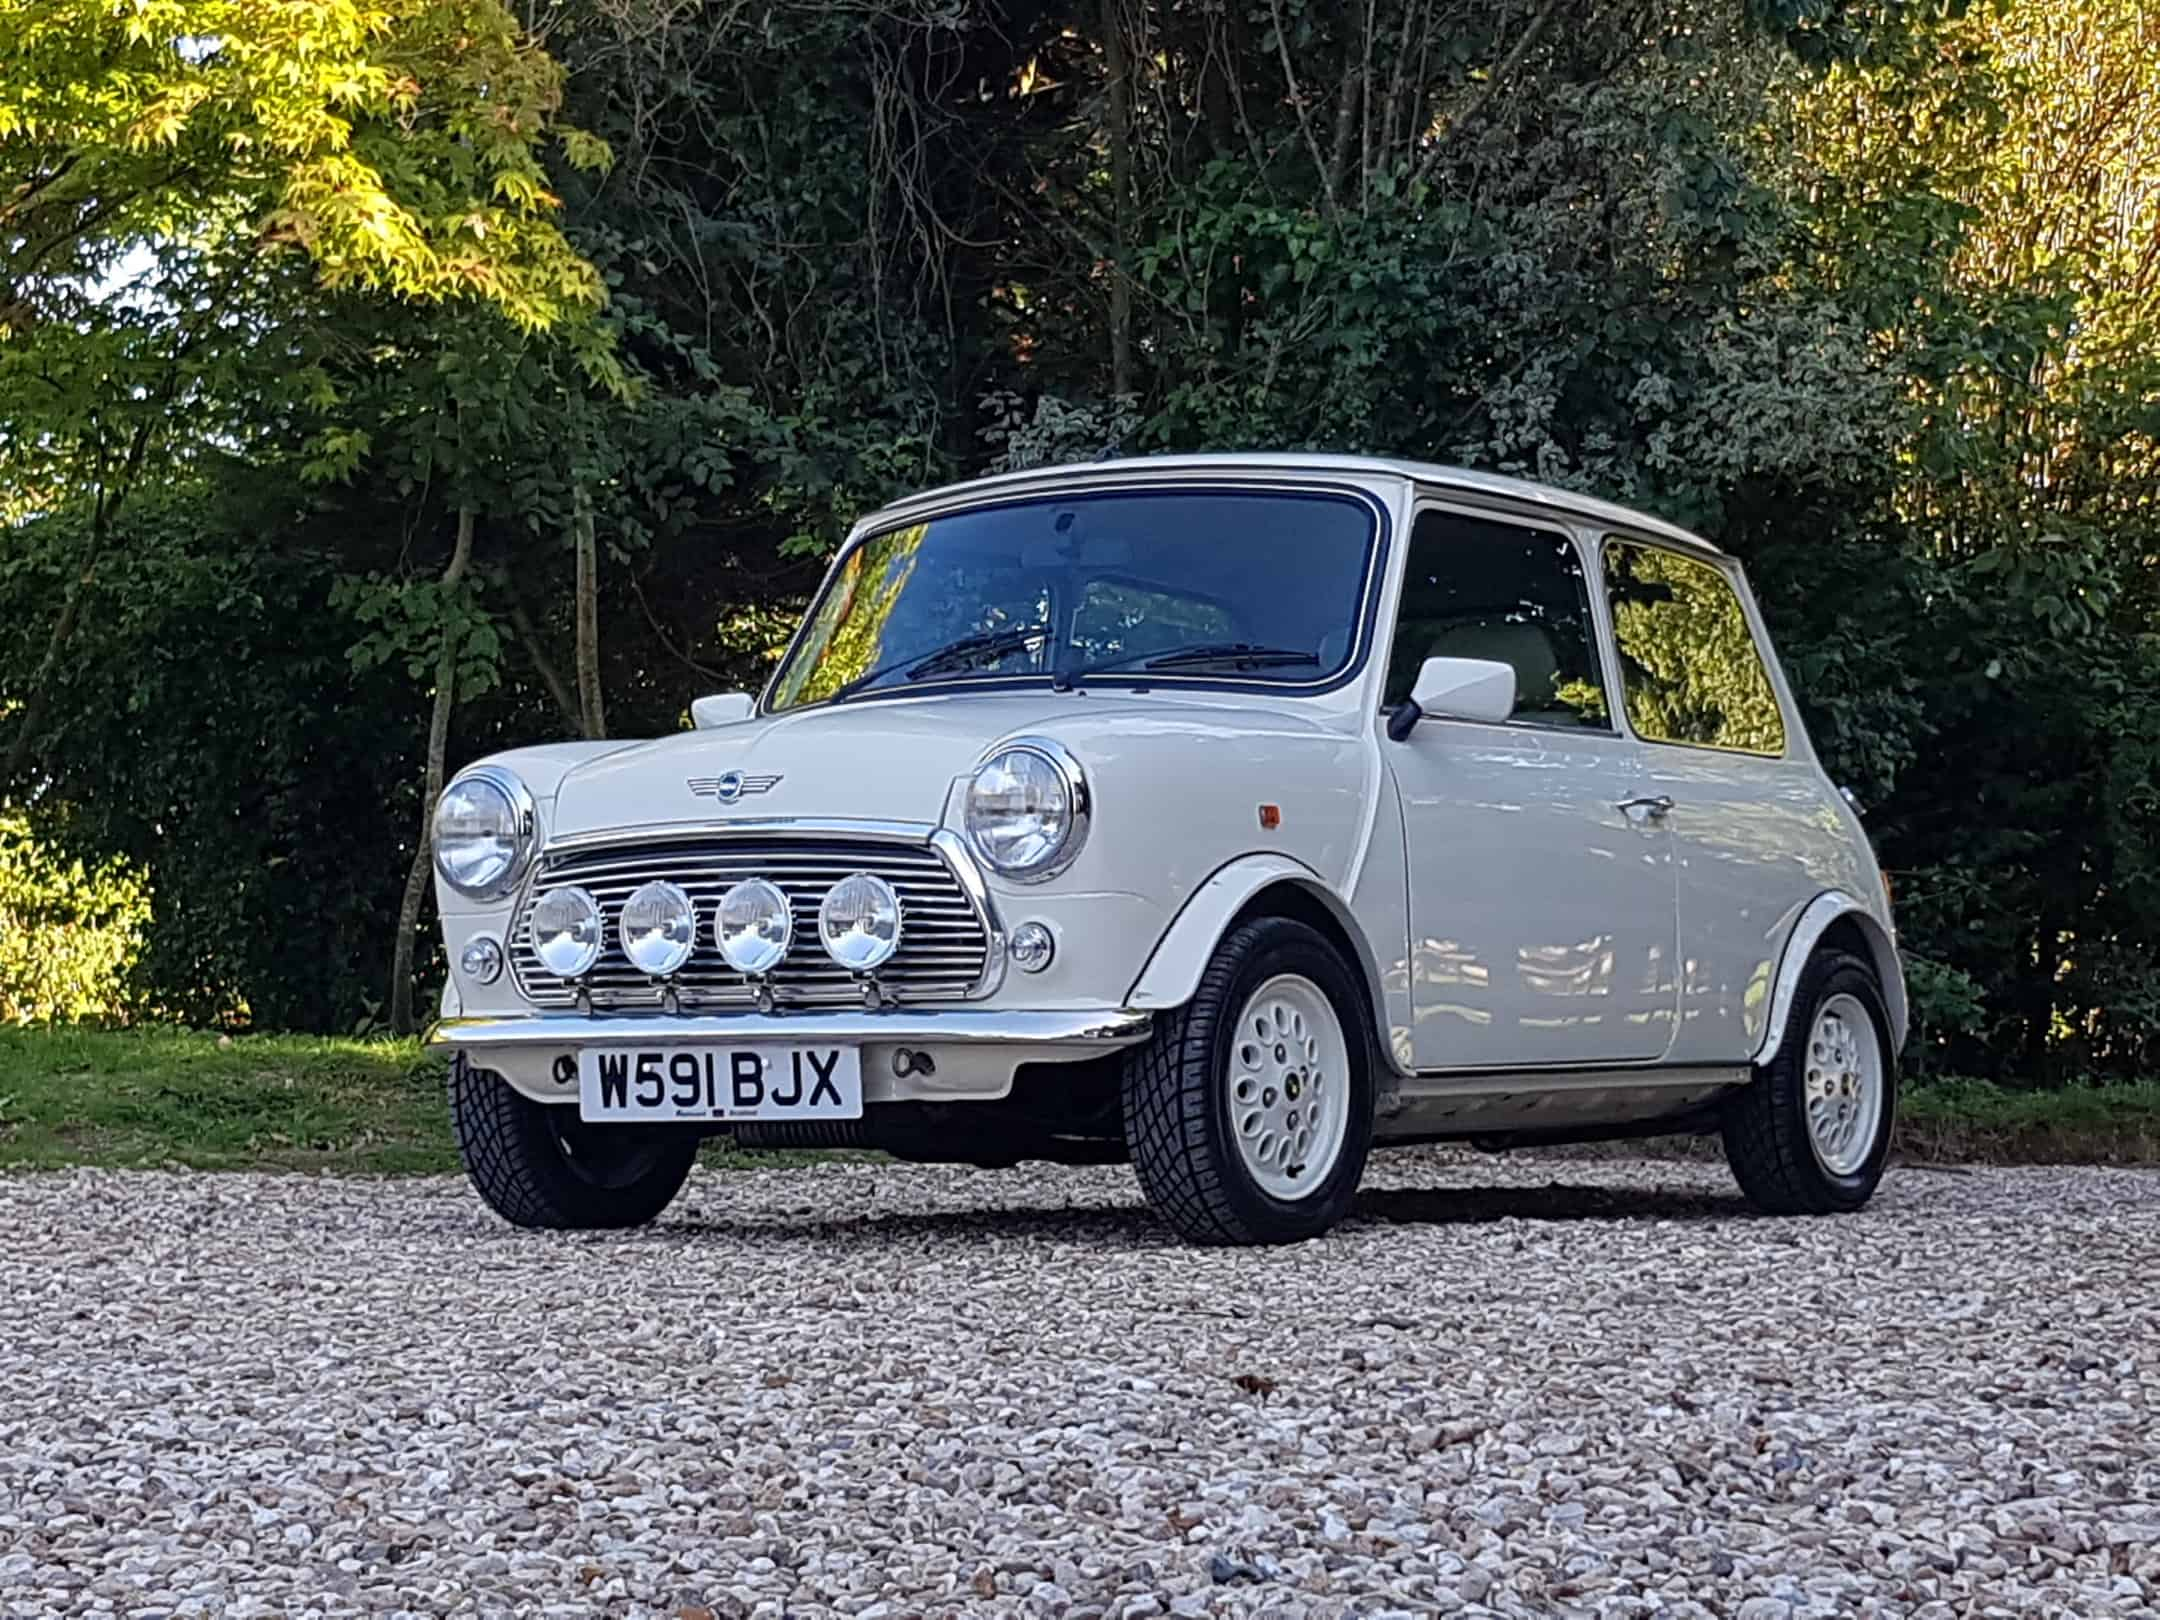 ** NOW SOLD ** Rare Old English White Mini Seven On 12500 Miles.